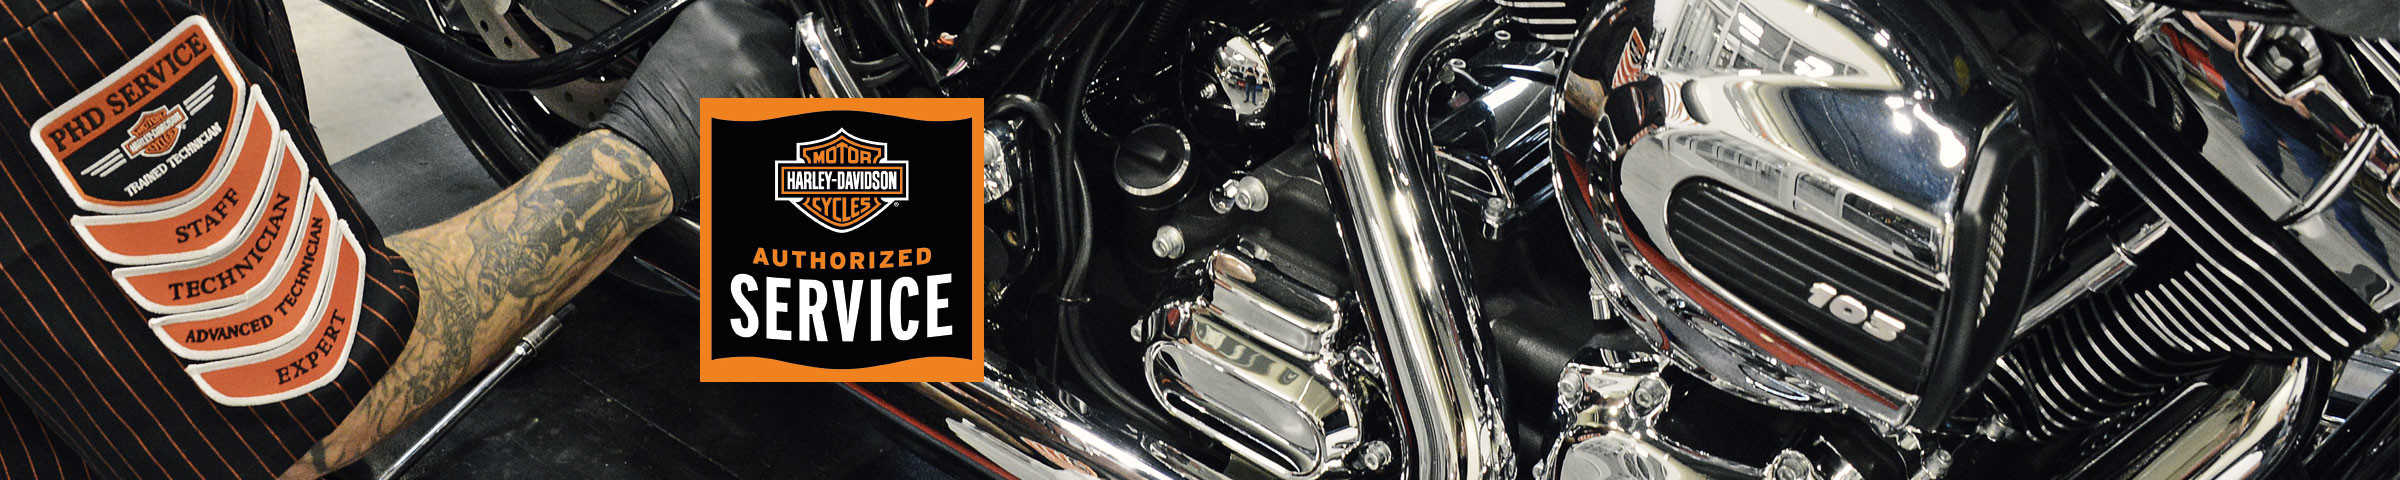 Service Department | Motorcycle Repair